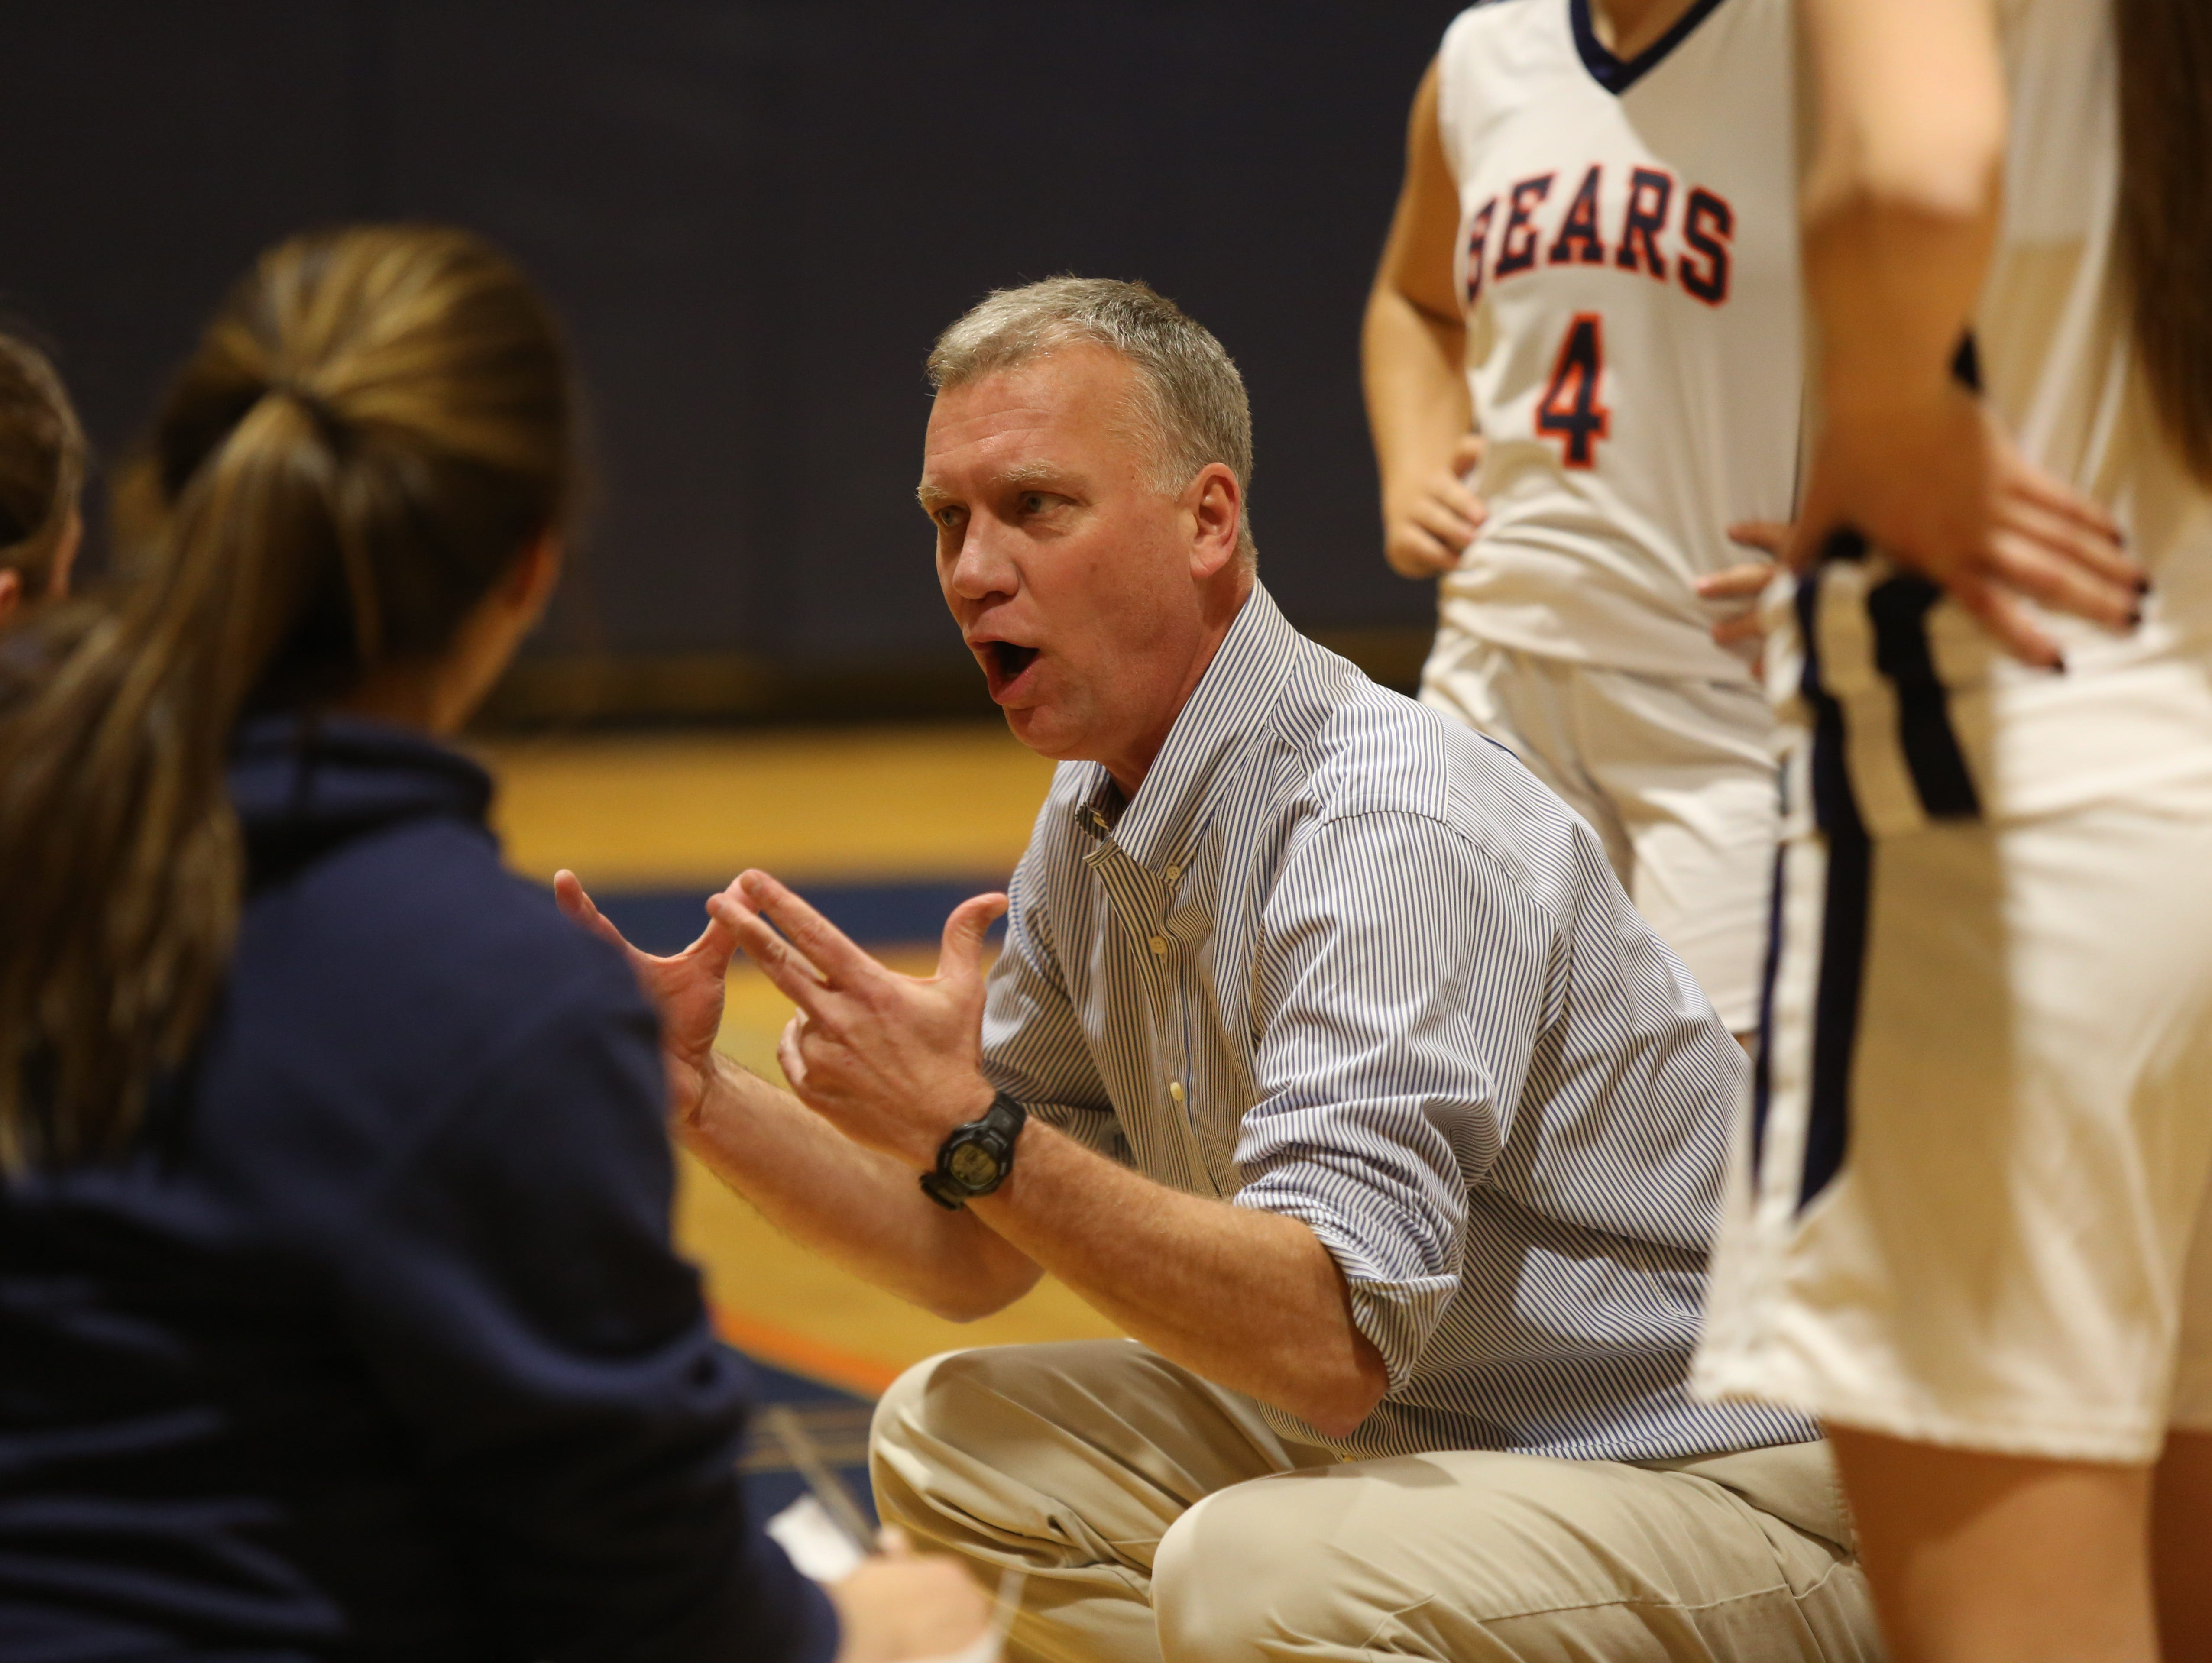 Briarcliff coach Don Hamlin talks to his team during girls basketball game against Pleasantville at Briarcliff High School on Jan. 29, 2015. Pleasantville defeated Briarcliff 40-29.